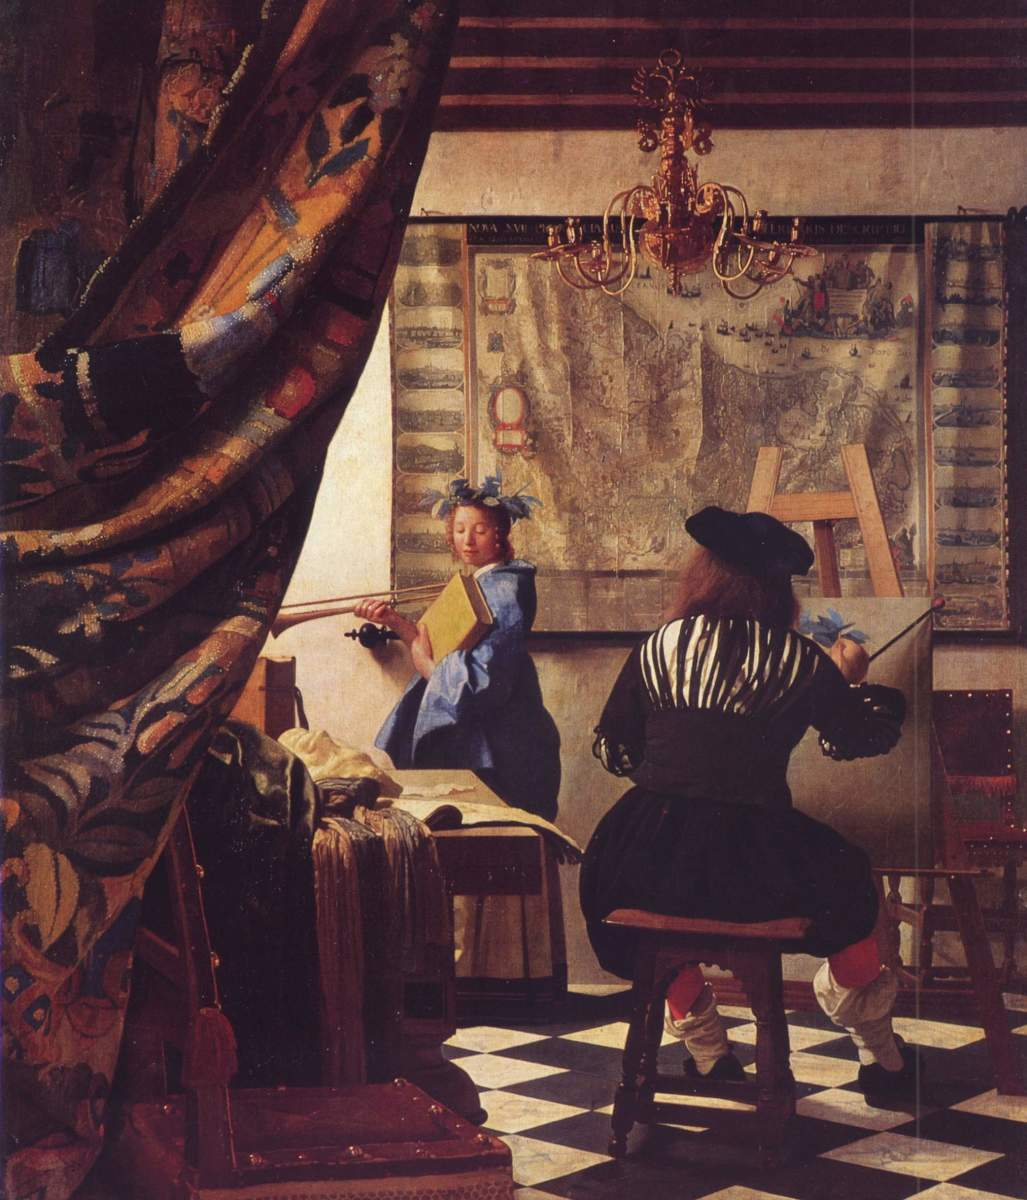 THE ART OF PAINTING BY VERMEER 1665